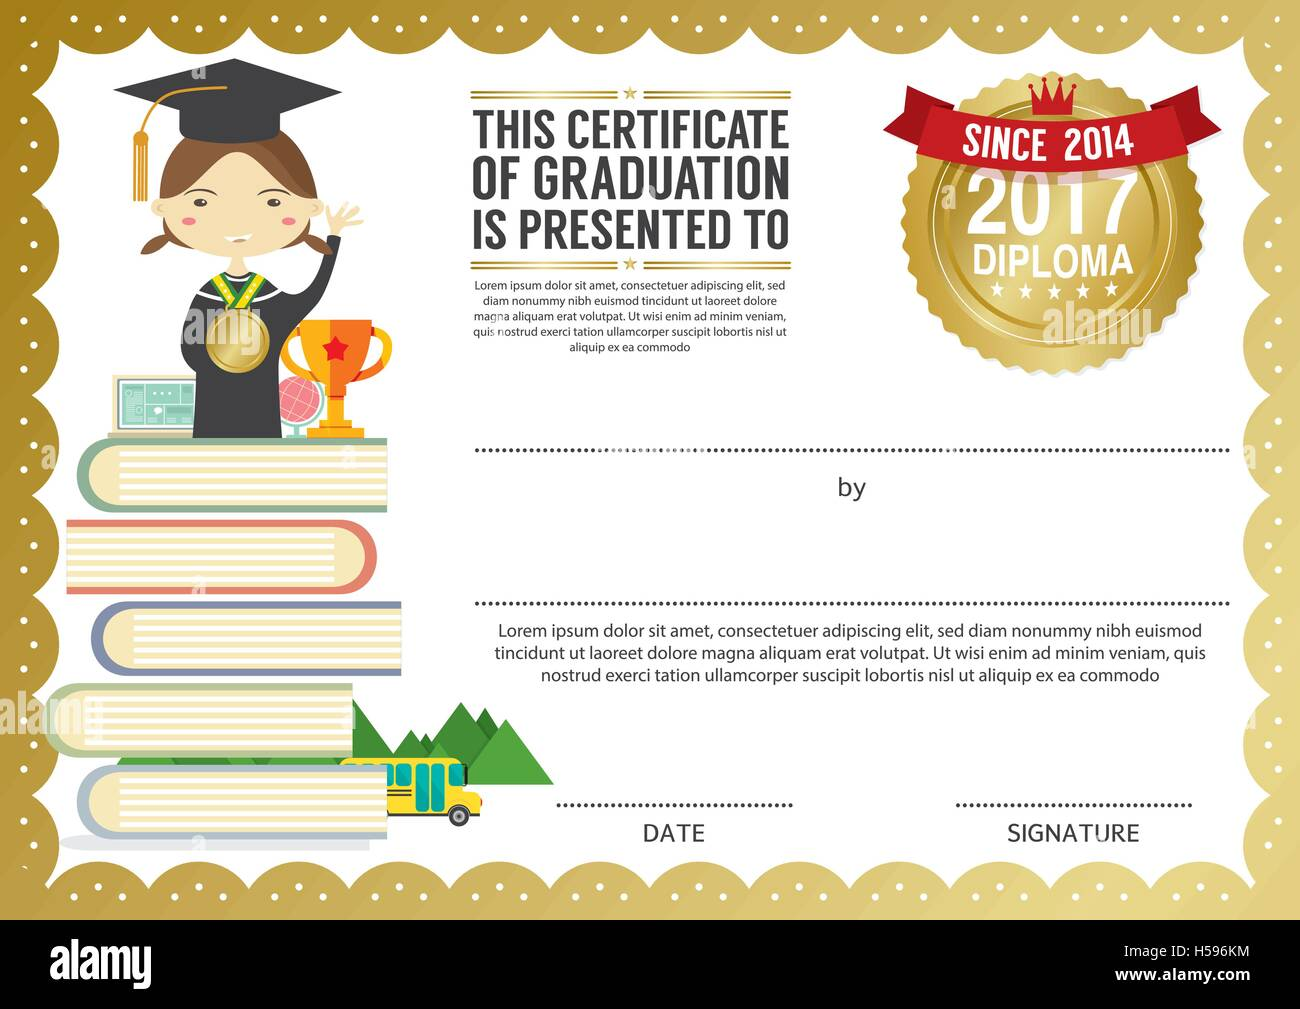 Preschool elementary school kids diploma certificate background preschool elementary school kids diploma certificate background design template yelopaper Gallery